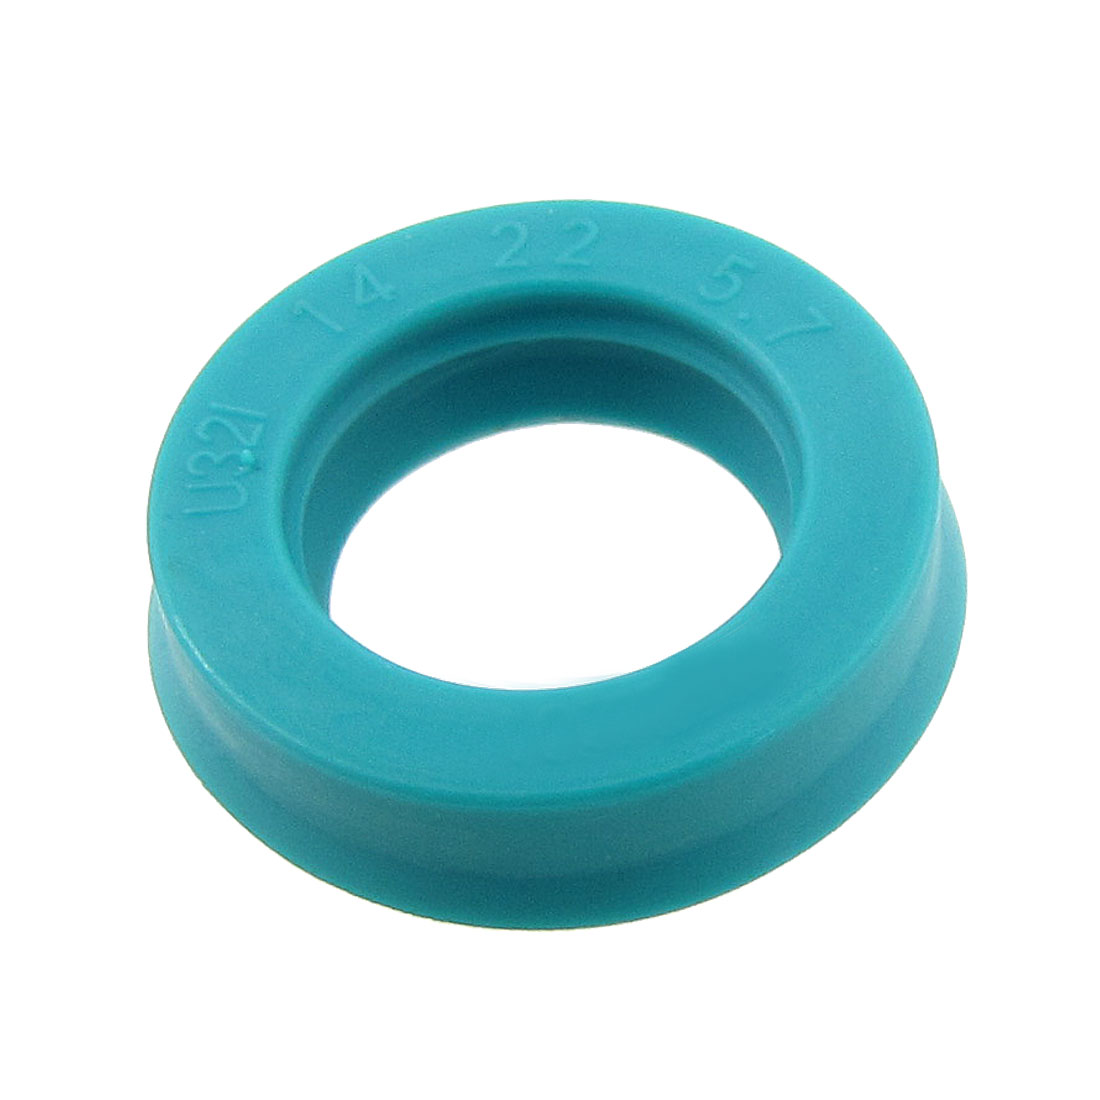 Metric 14 x 22 x 5.7mm Single Lip Piston Rod Oil Grease Seal U32i